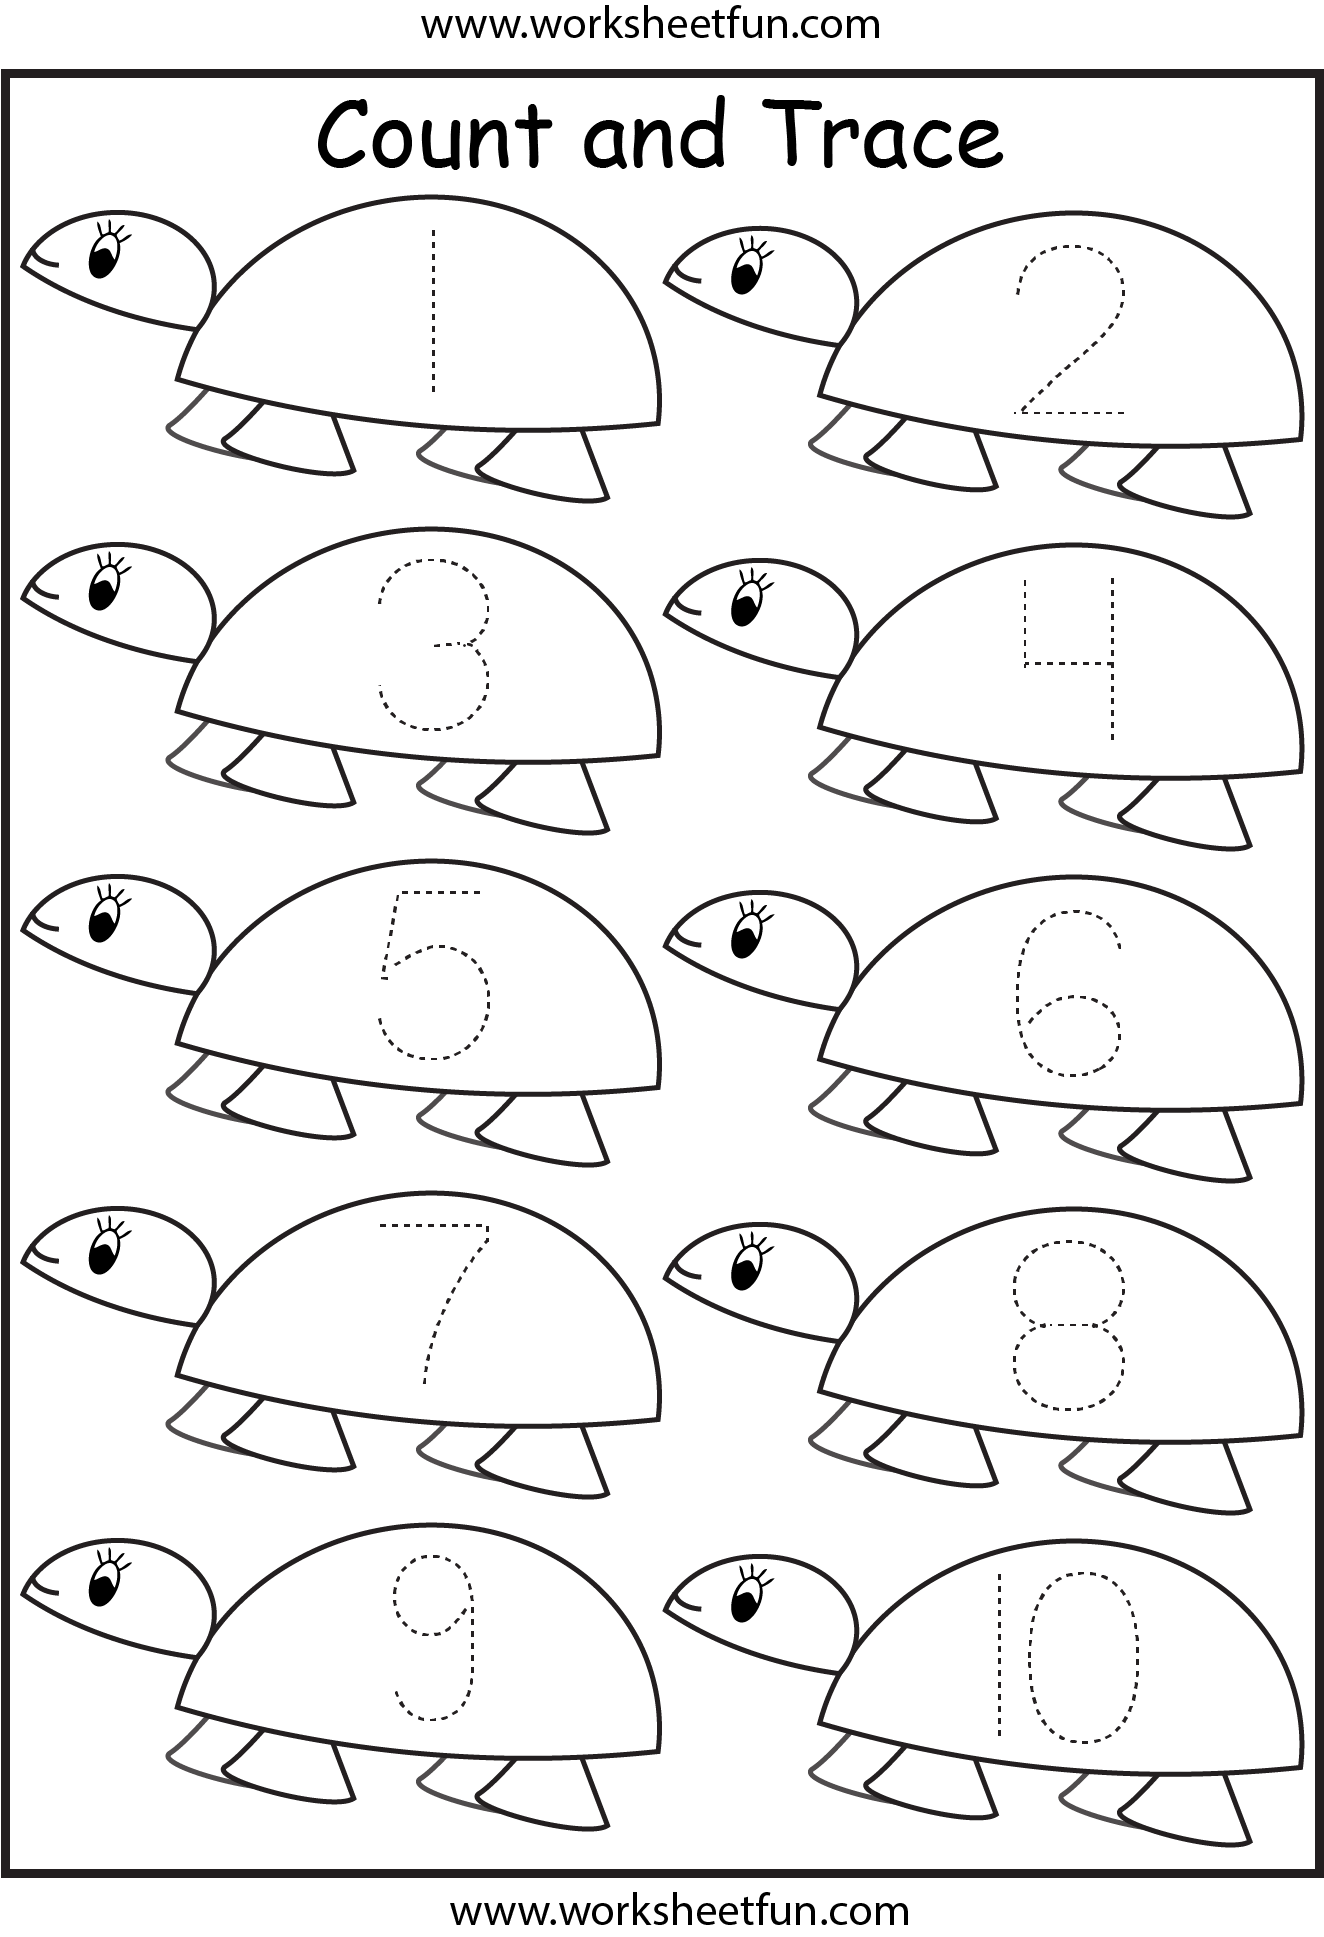 Preschool Number Tracing Worksheet 11 20